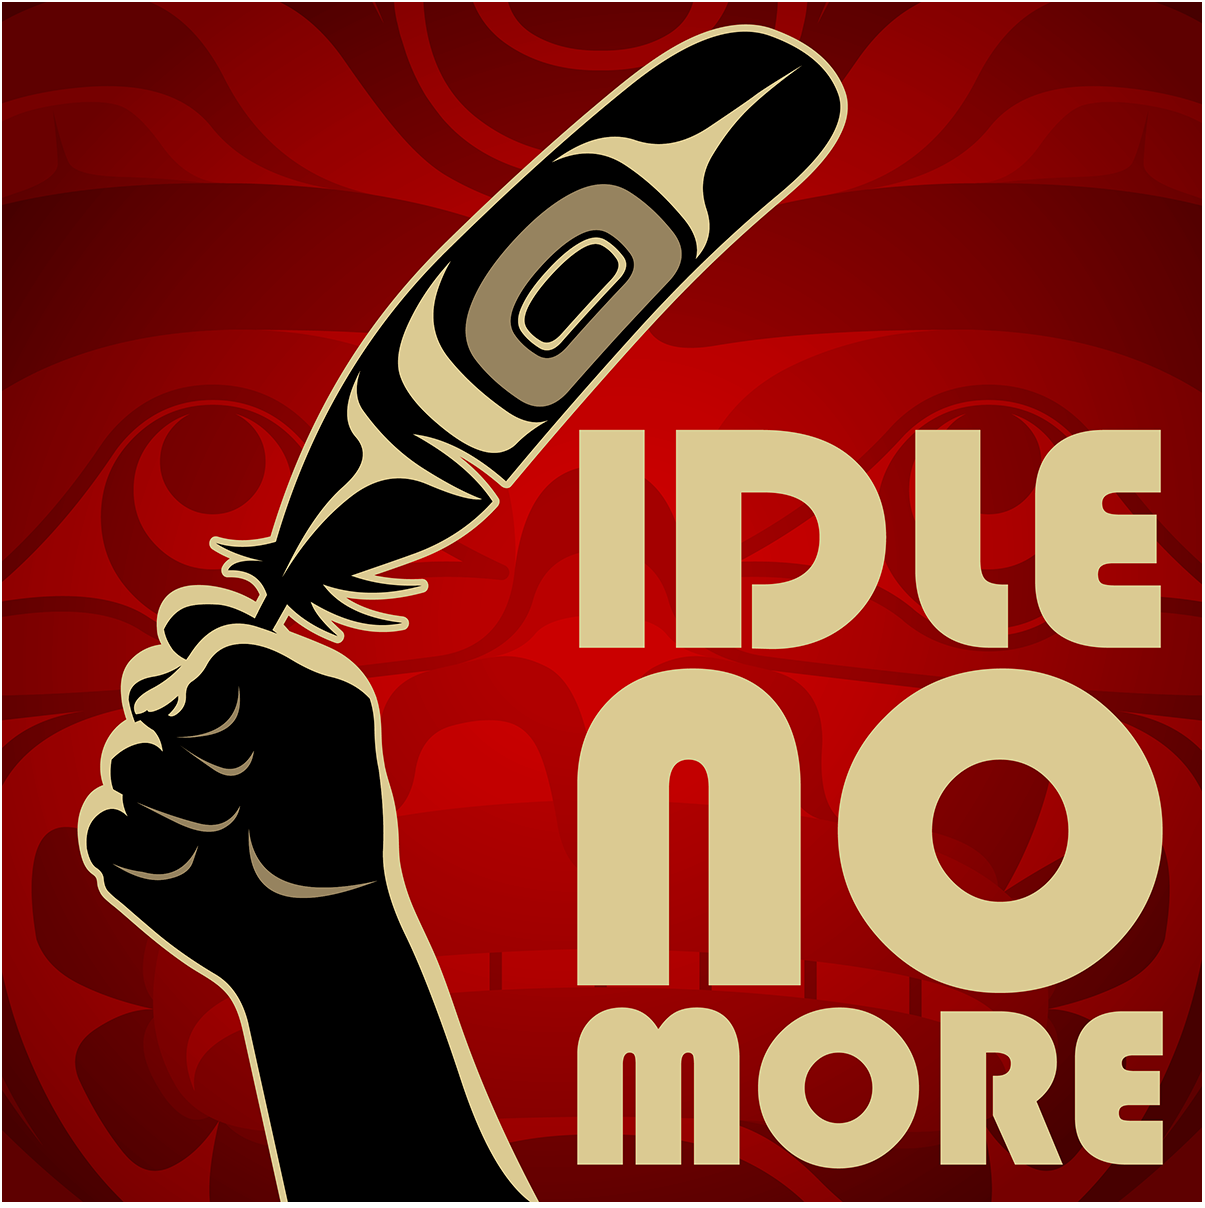 for more information, pictures or articles on idle no more   click here.